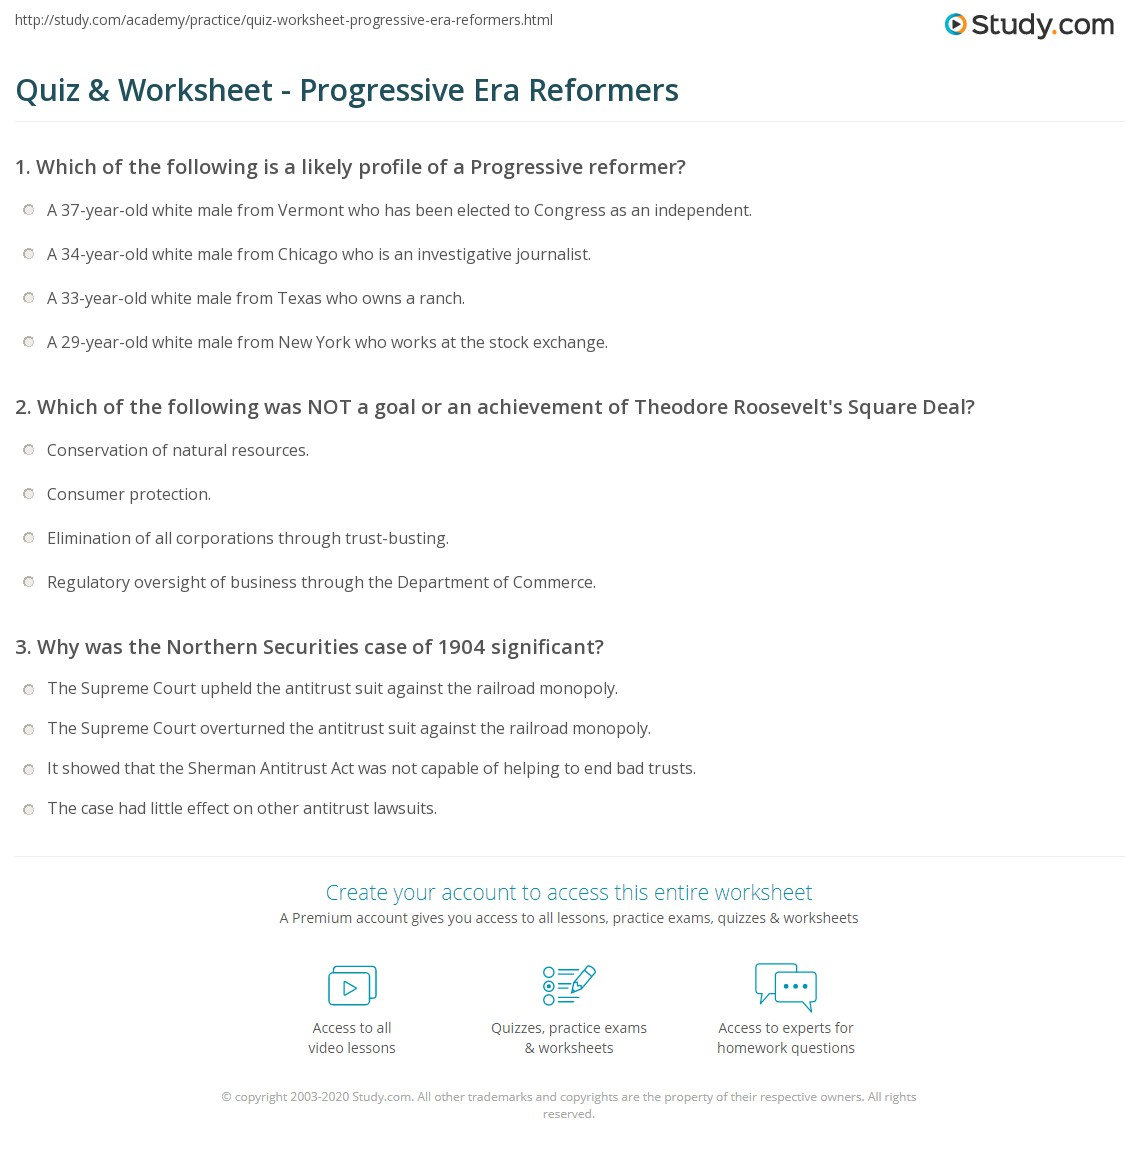 Worksheets Progressive Era Worksheets quiz worksheet progressive era reformers study com print theodore roosevelt the progressives definition and political agenda worksheet